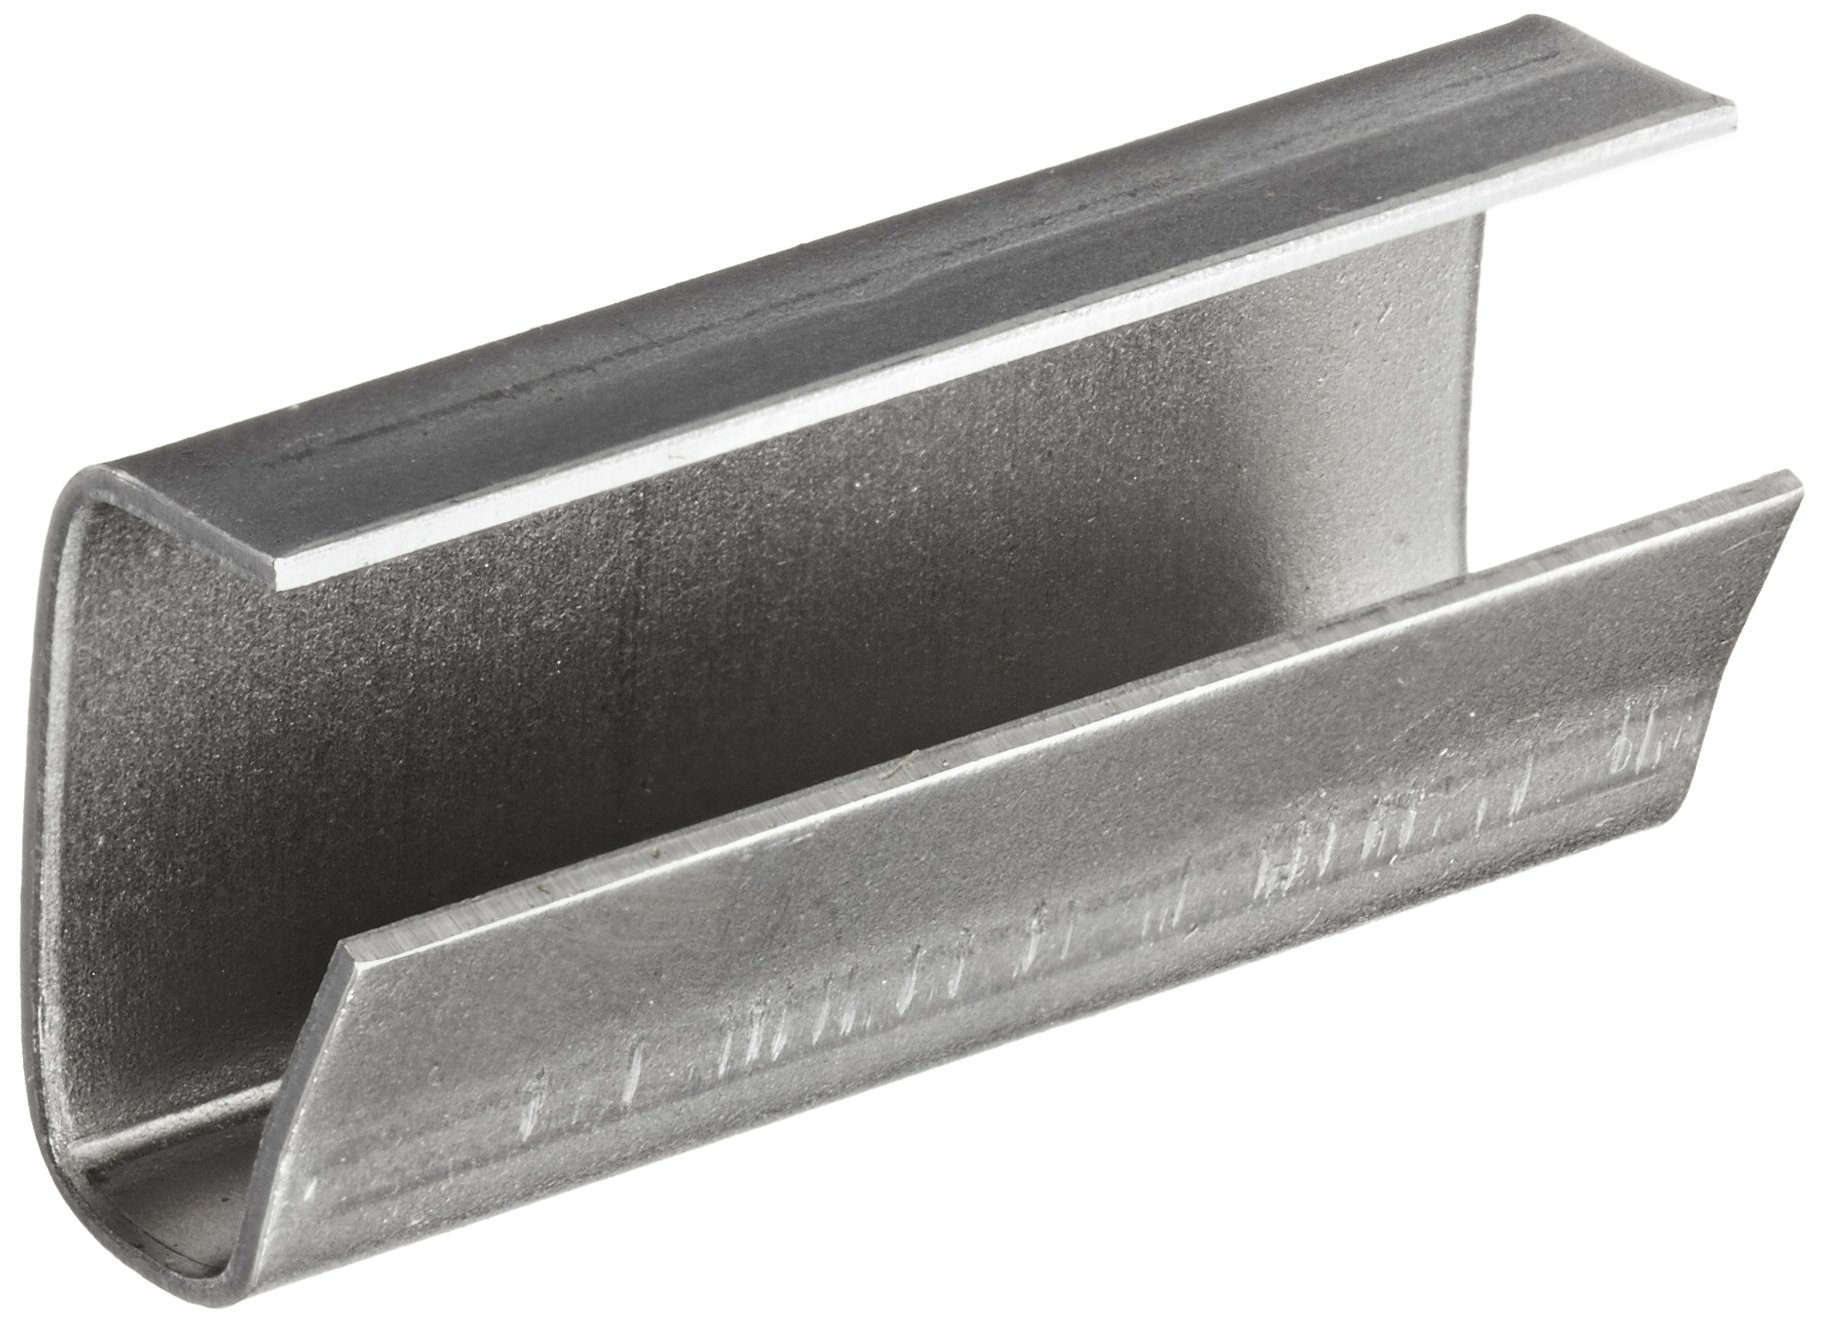 PAC Strapping HSS-4A 1/2'' Serrated Seals for Polyester Strapping, for Combination Tools (Pack of 1000)